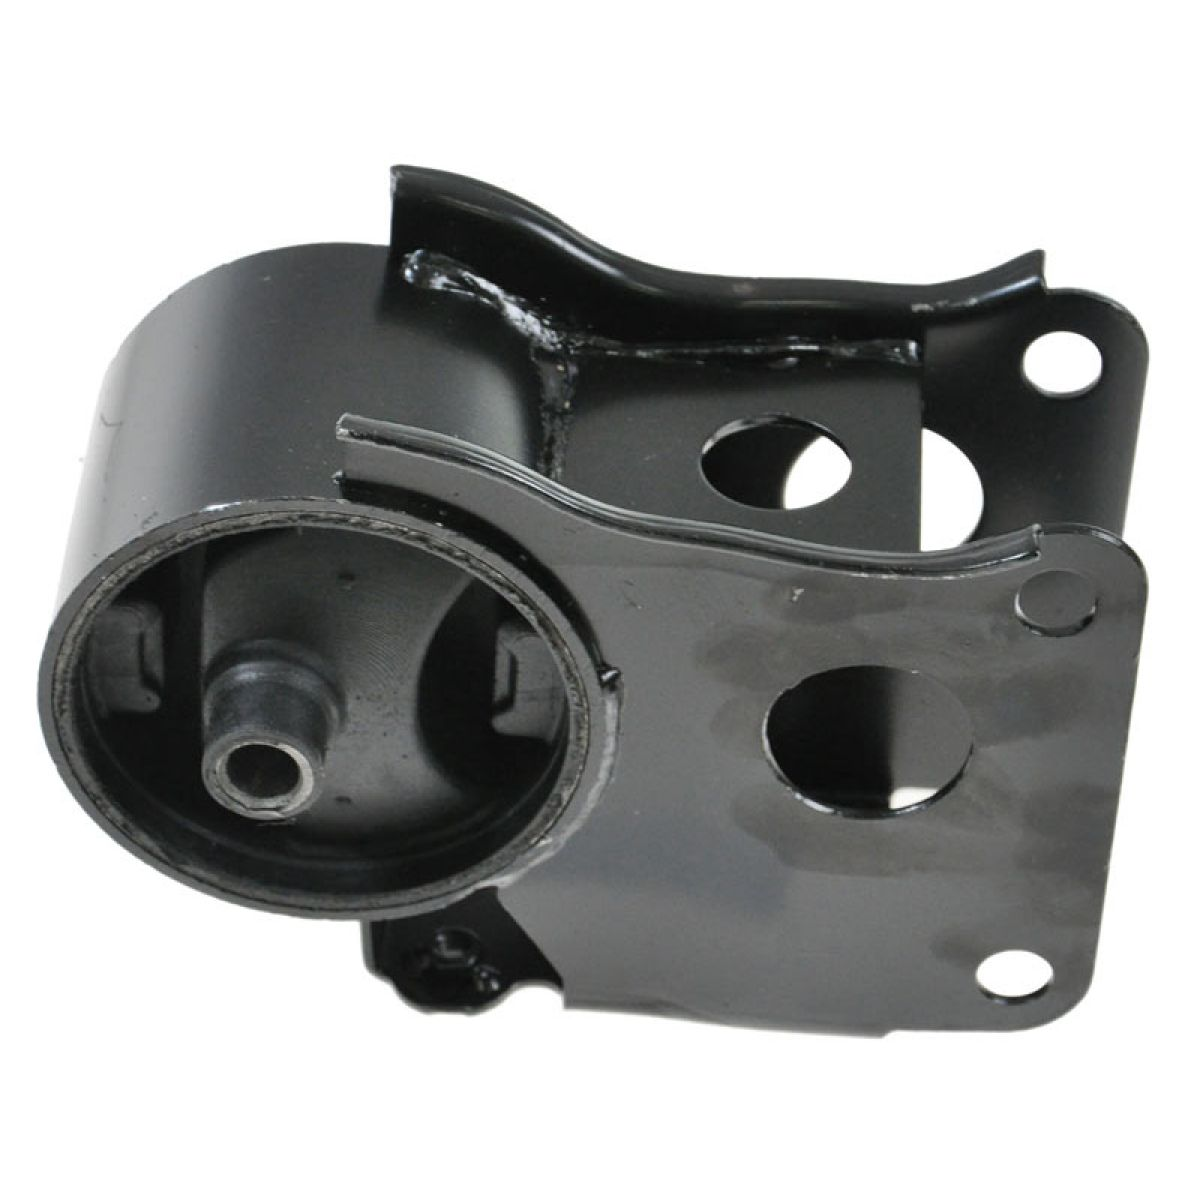 Rear Firewall Engine Motor Mount NEW for 02-06 Nissan Altima 2.5L